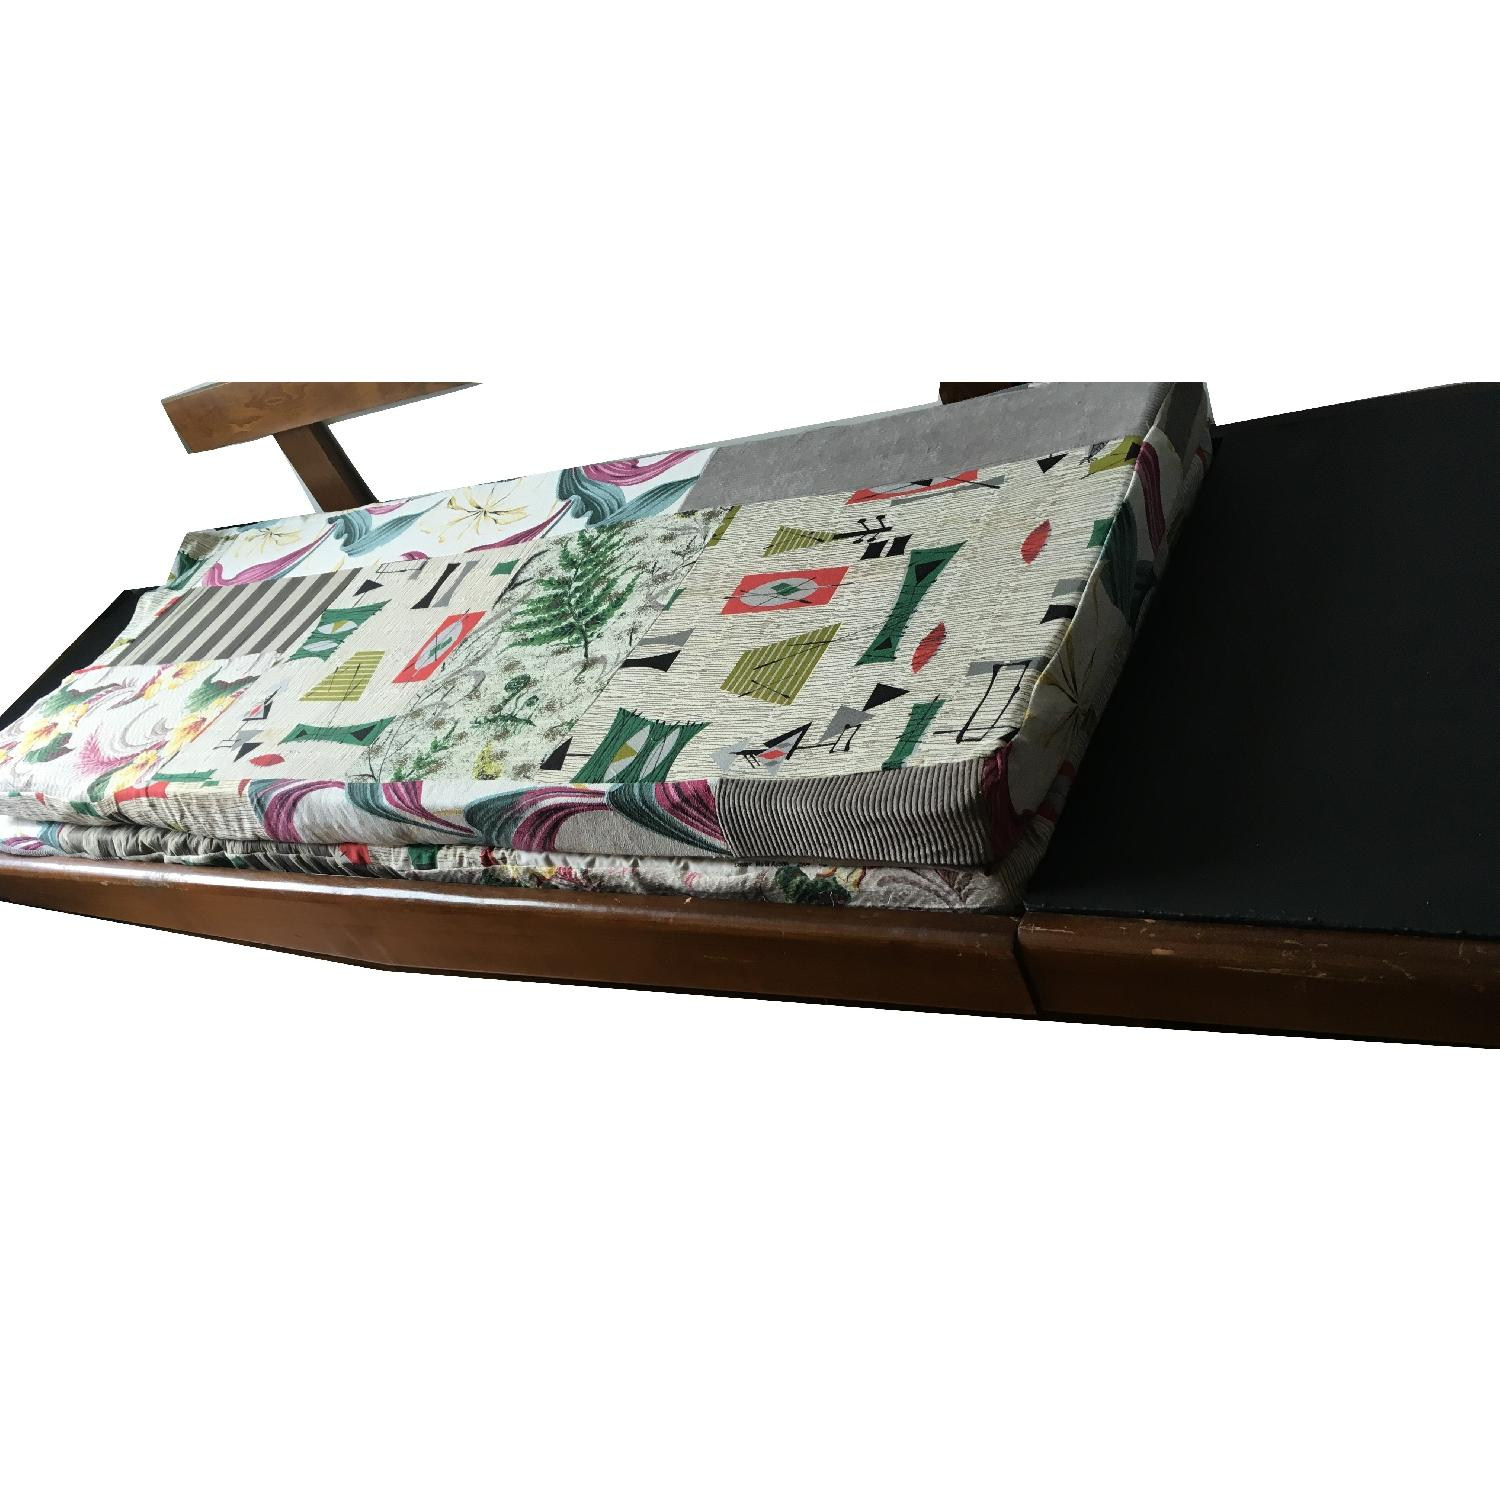 Mid Century Modern 1950's Daybed Pull Out Platform Sofa-4